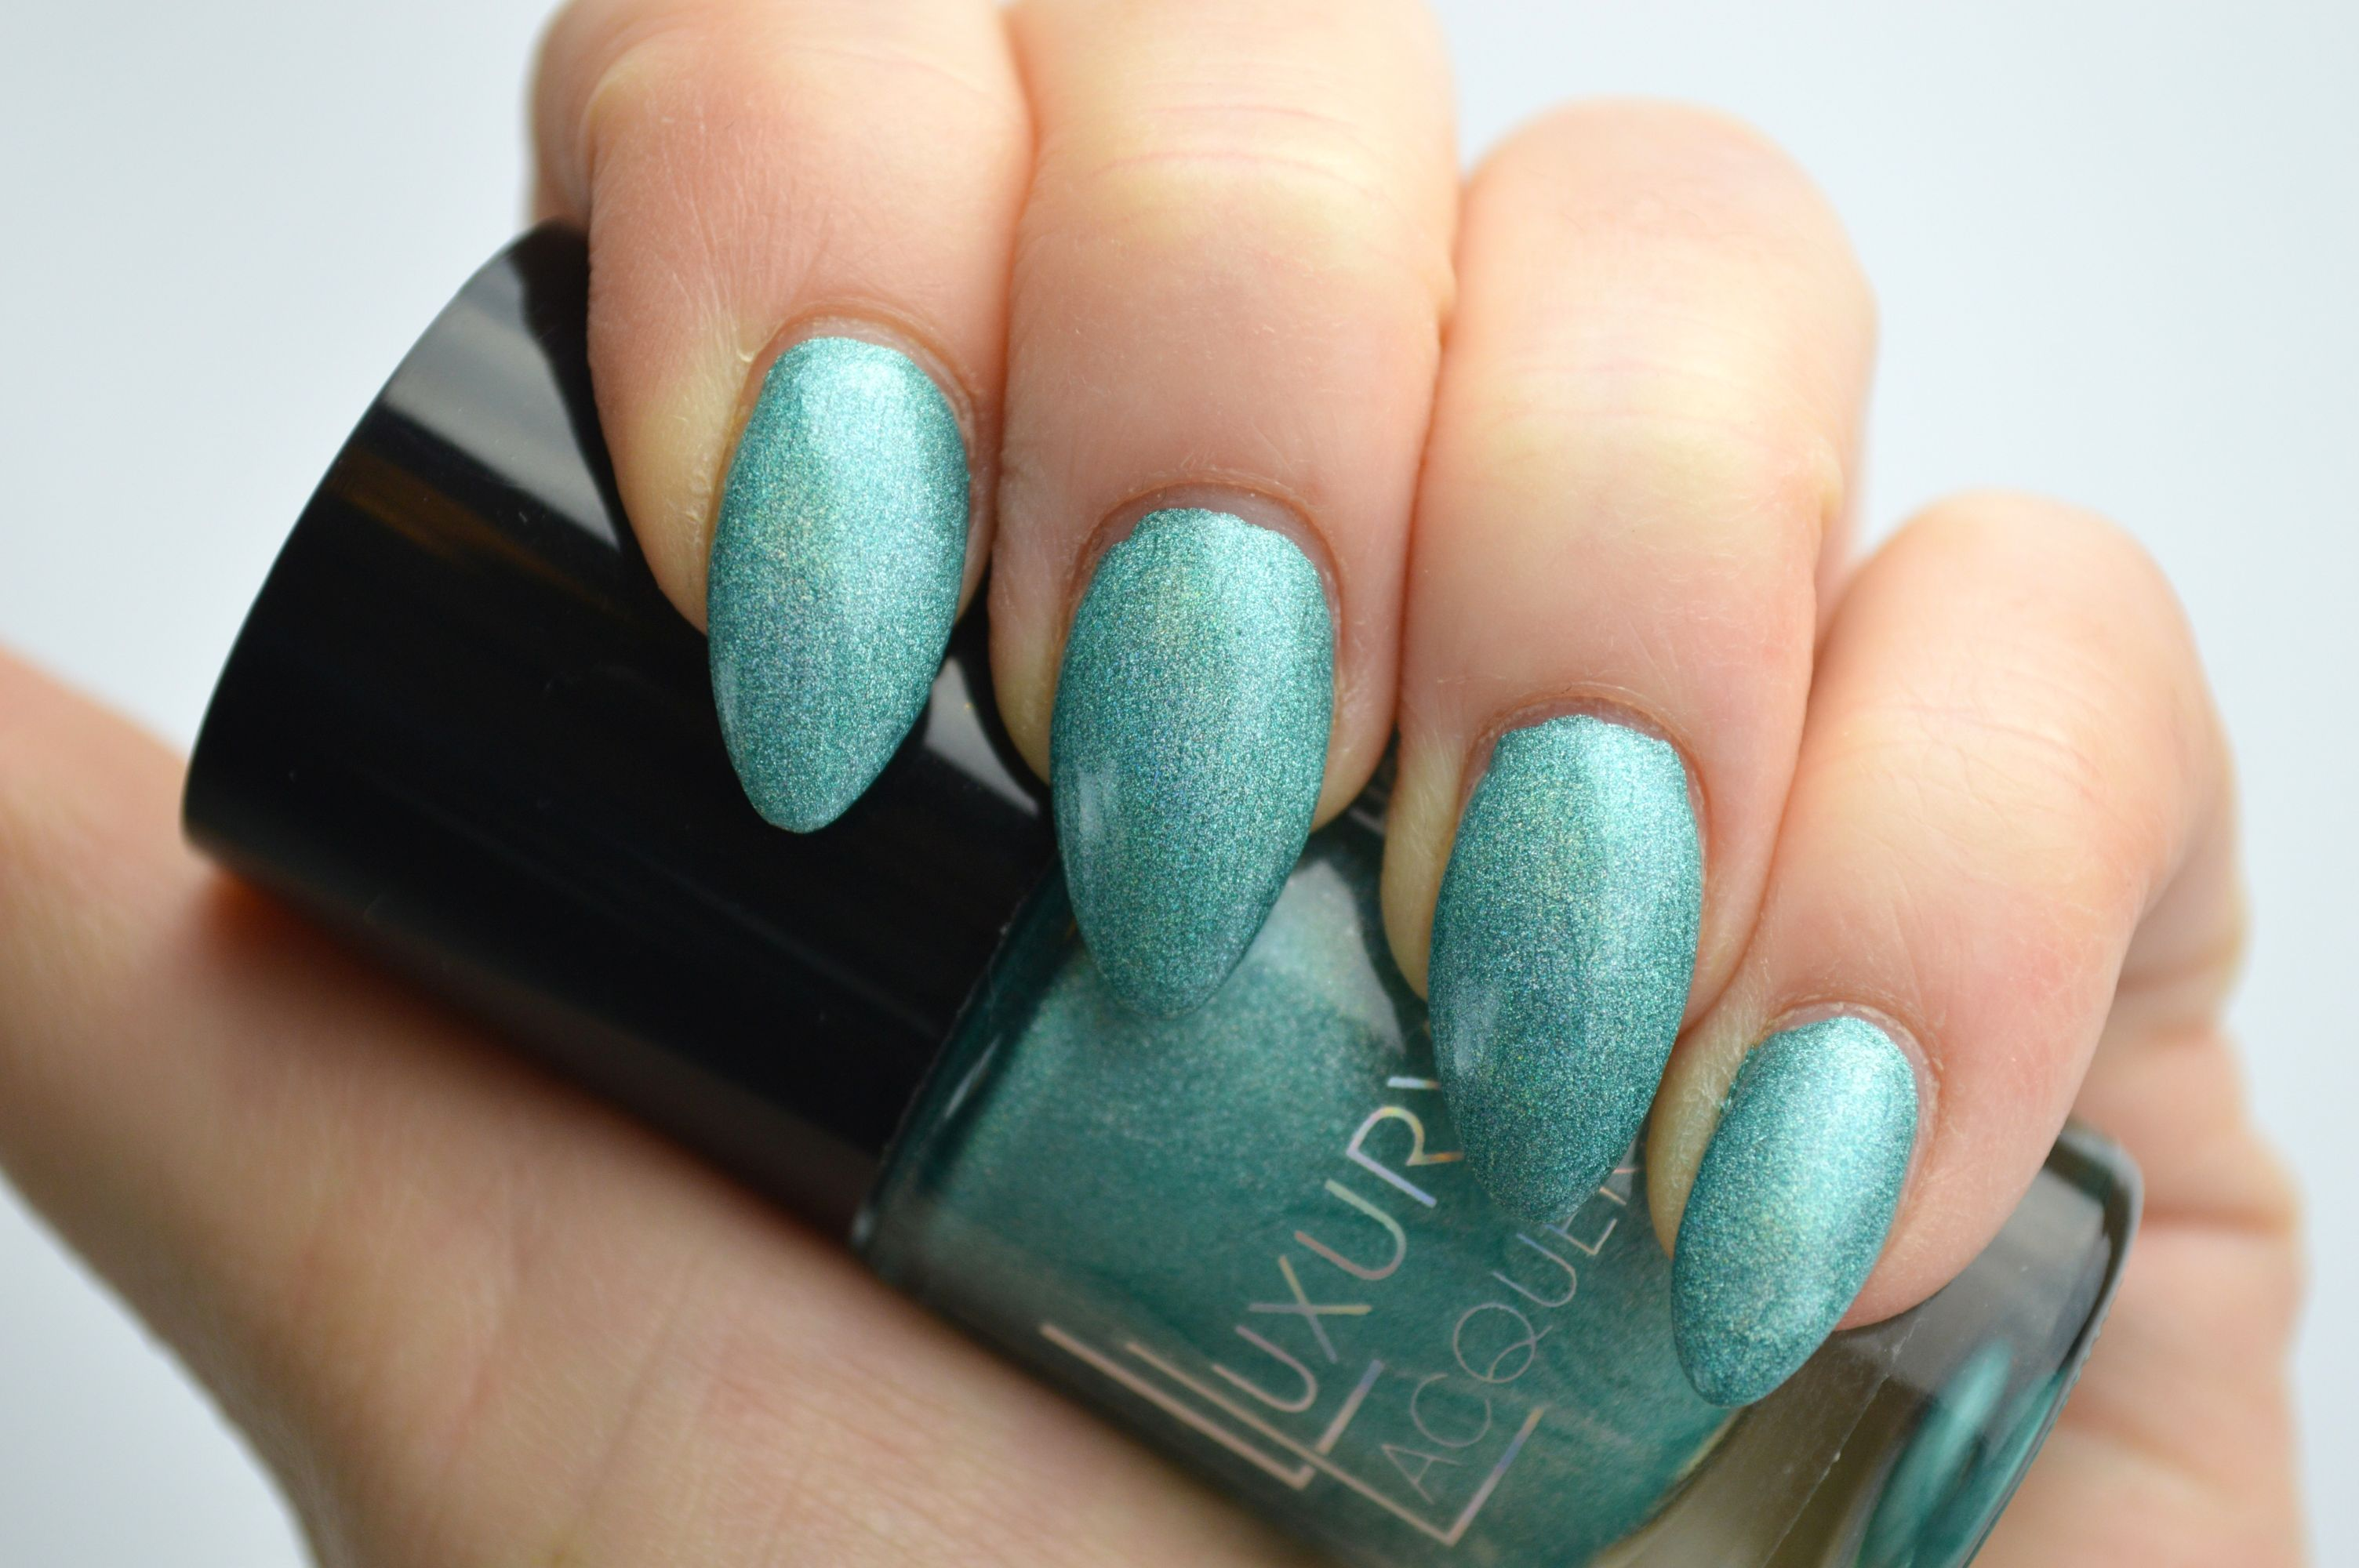 Catrice_Holomania_Holo_in_One_Review